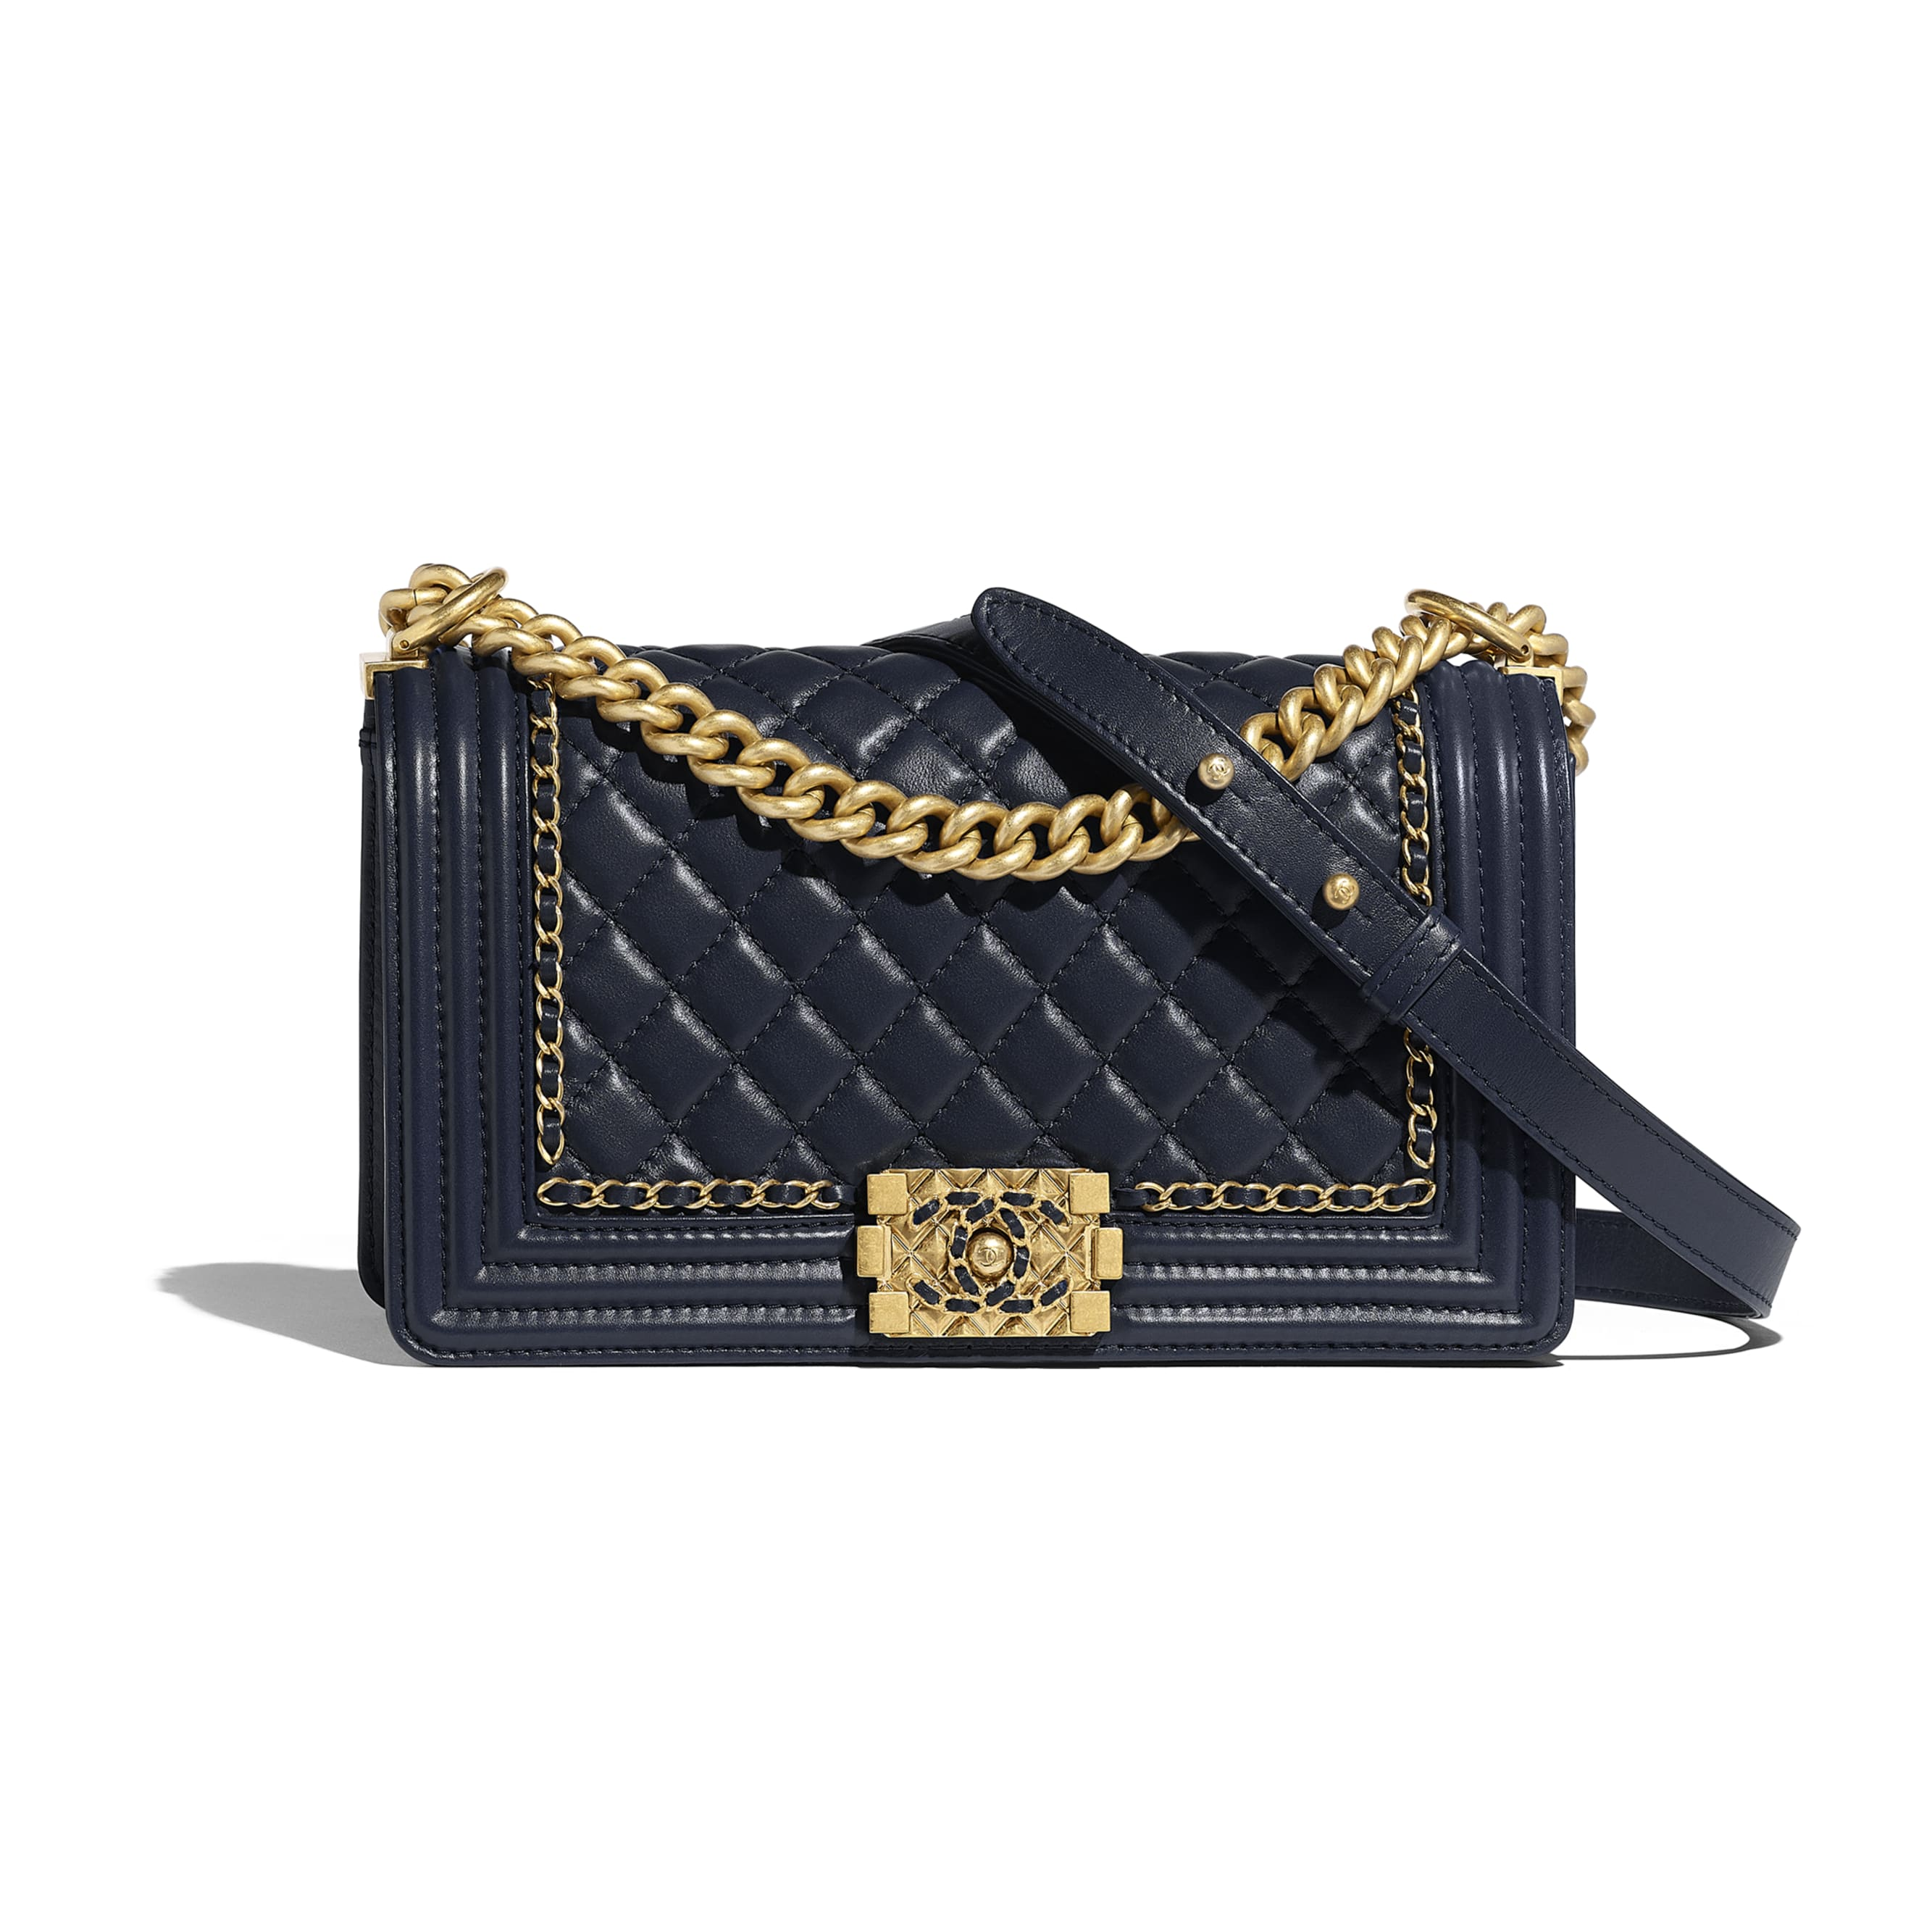 BOY CHANEL Handbag - Navy Blue - Calfskin & Gold-Tone Metal - Default view - see standard sized version